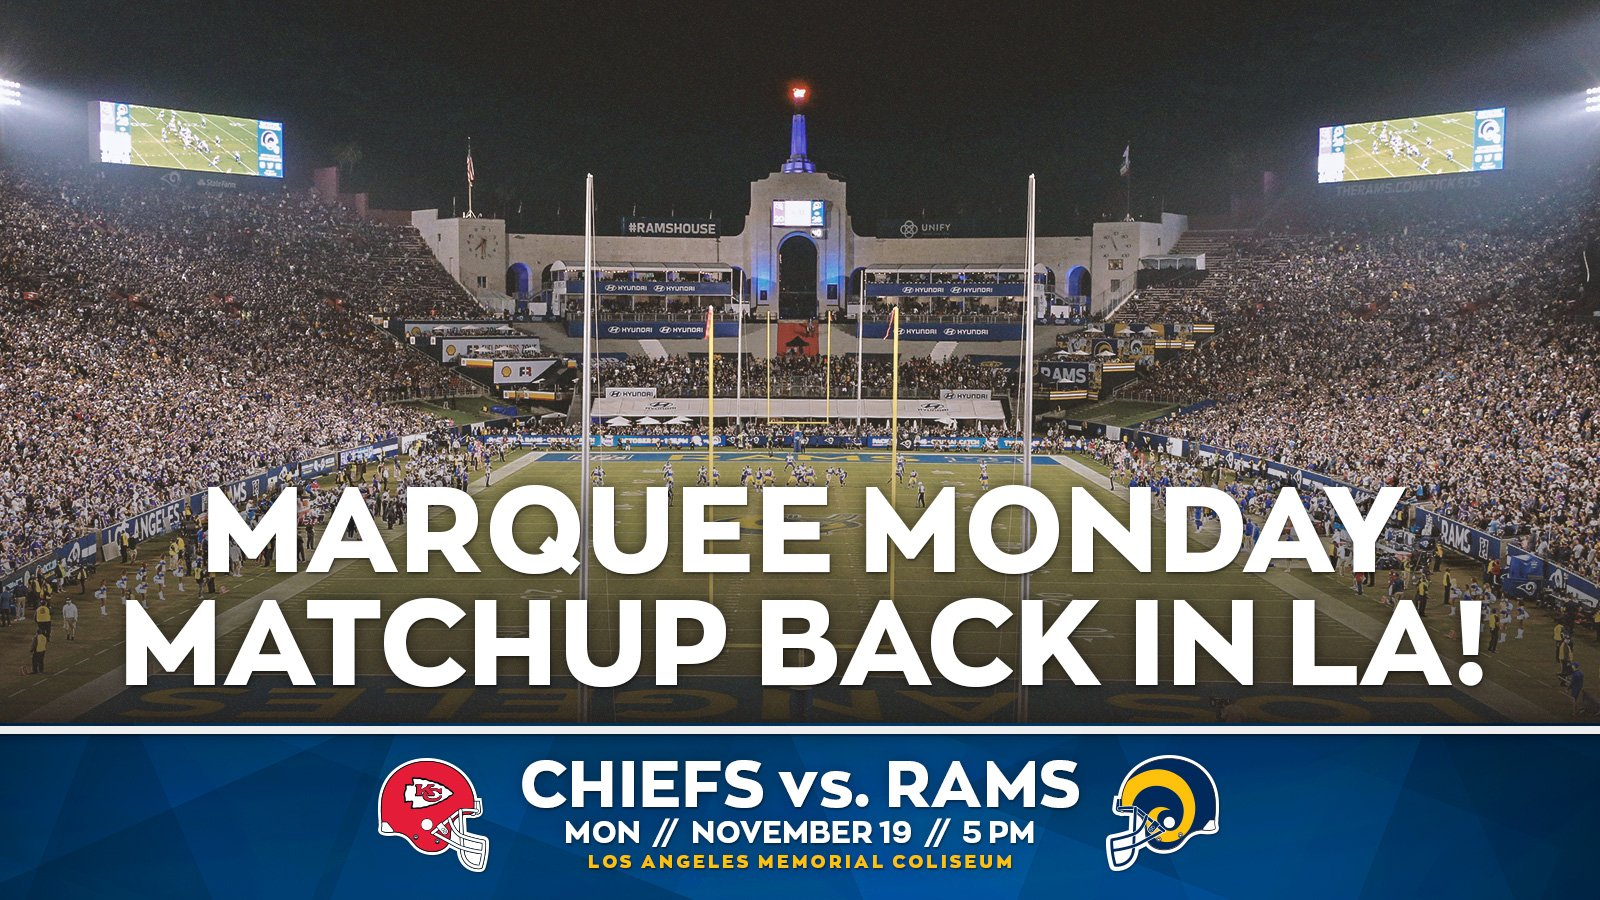 #MNF is back in Los Angeles!   Secure your seats �� » https://t.co/9AIoJqpnJV https://t.co/hgFOYqcMgQ